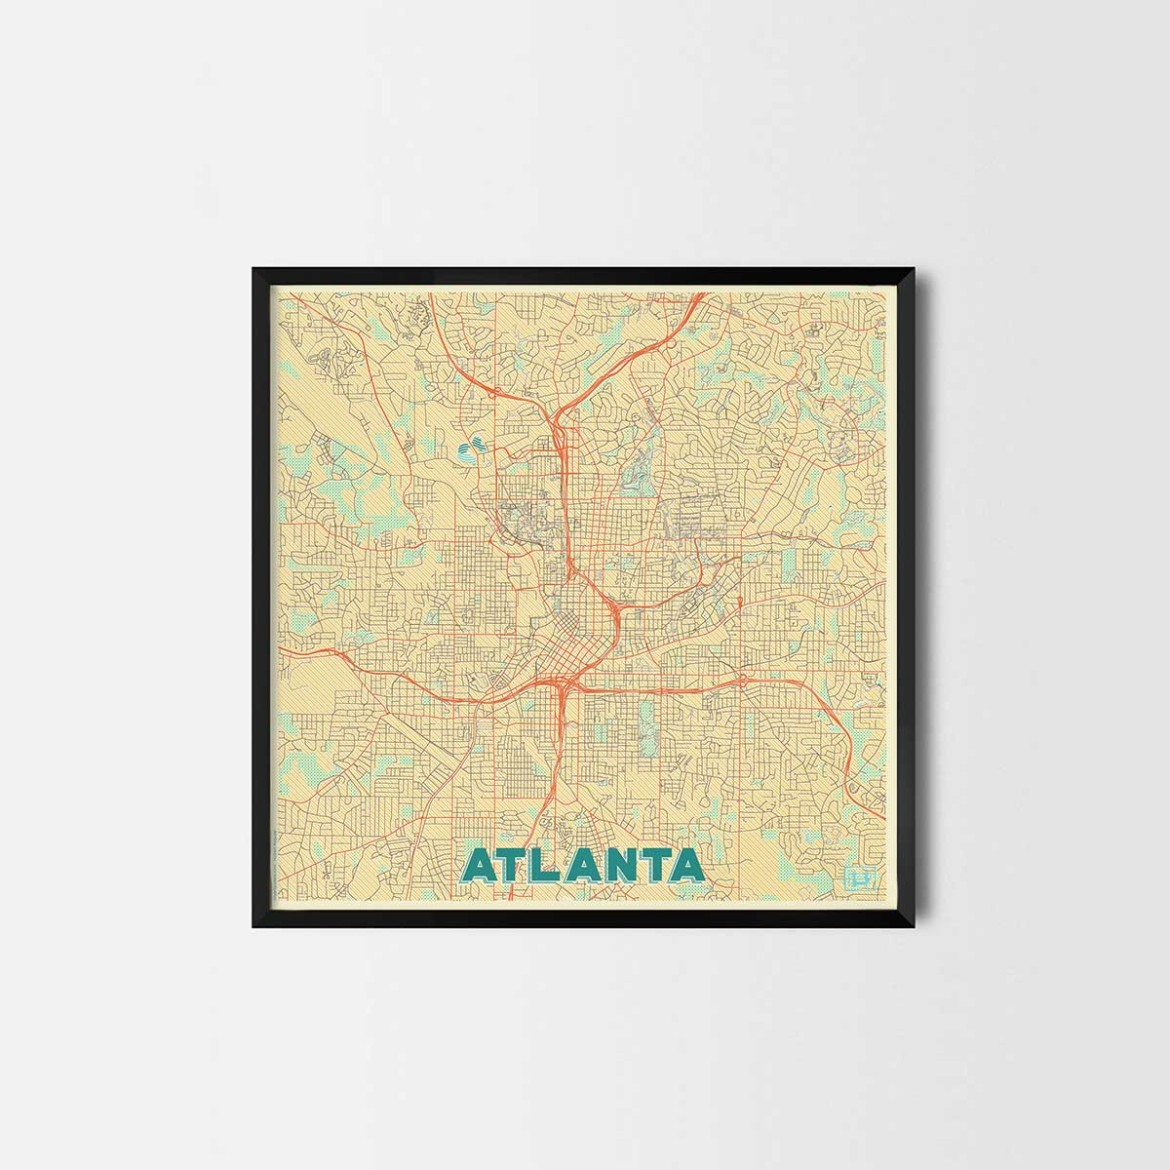 Atlanta gift - Map Art Prints and Posters, Home Decor Gifts